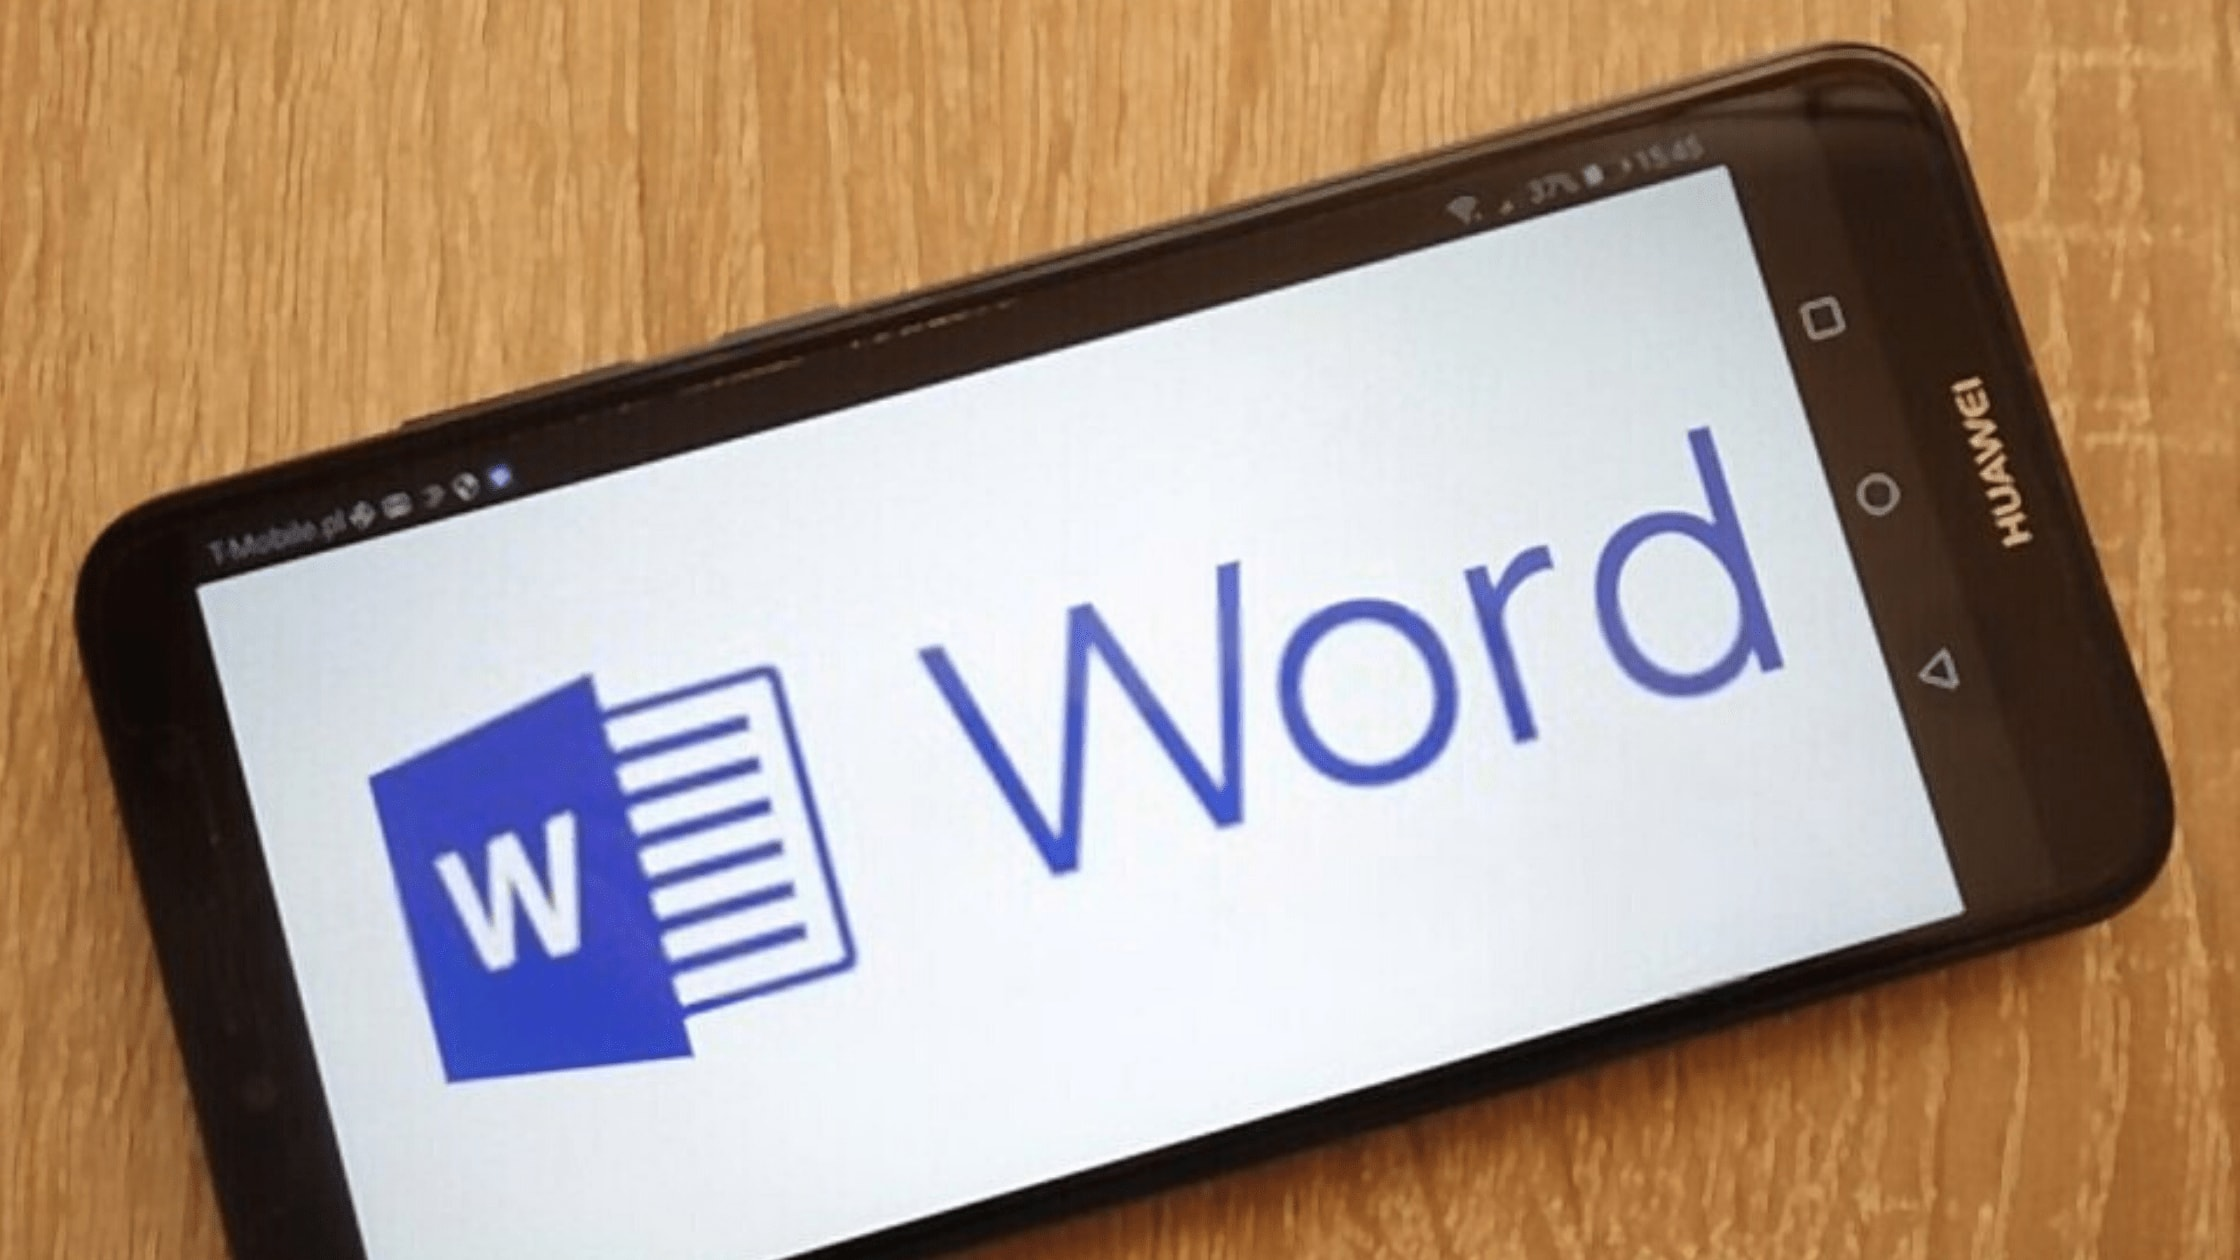 How to rotate a table in word